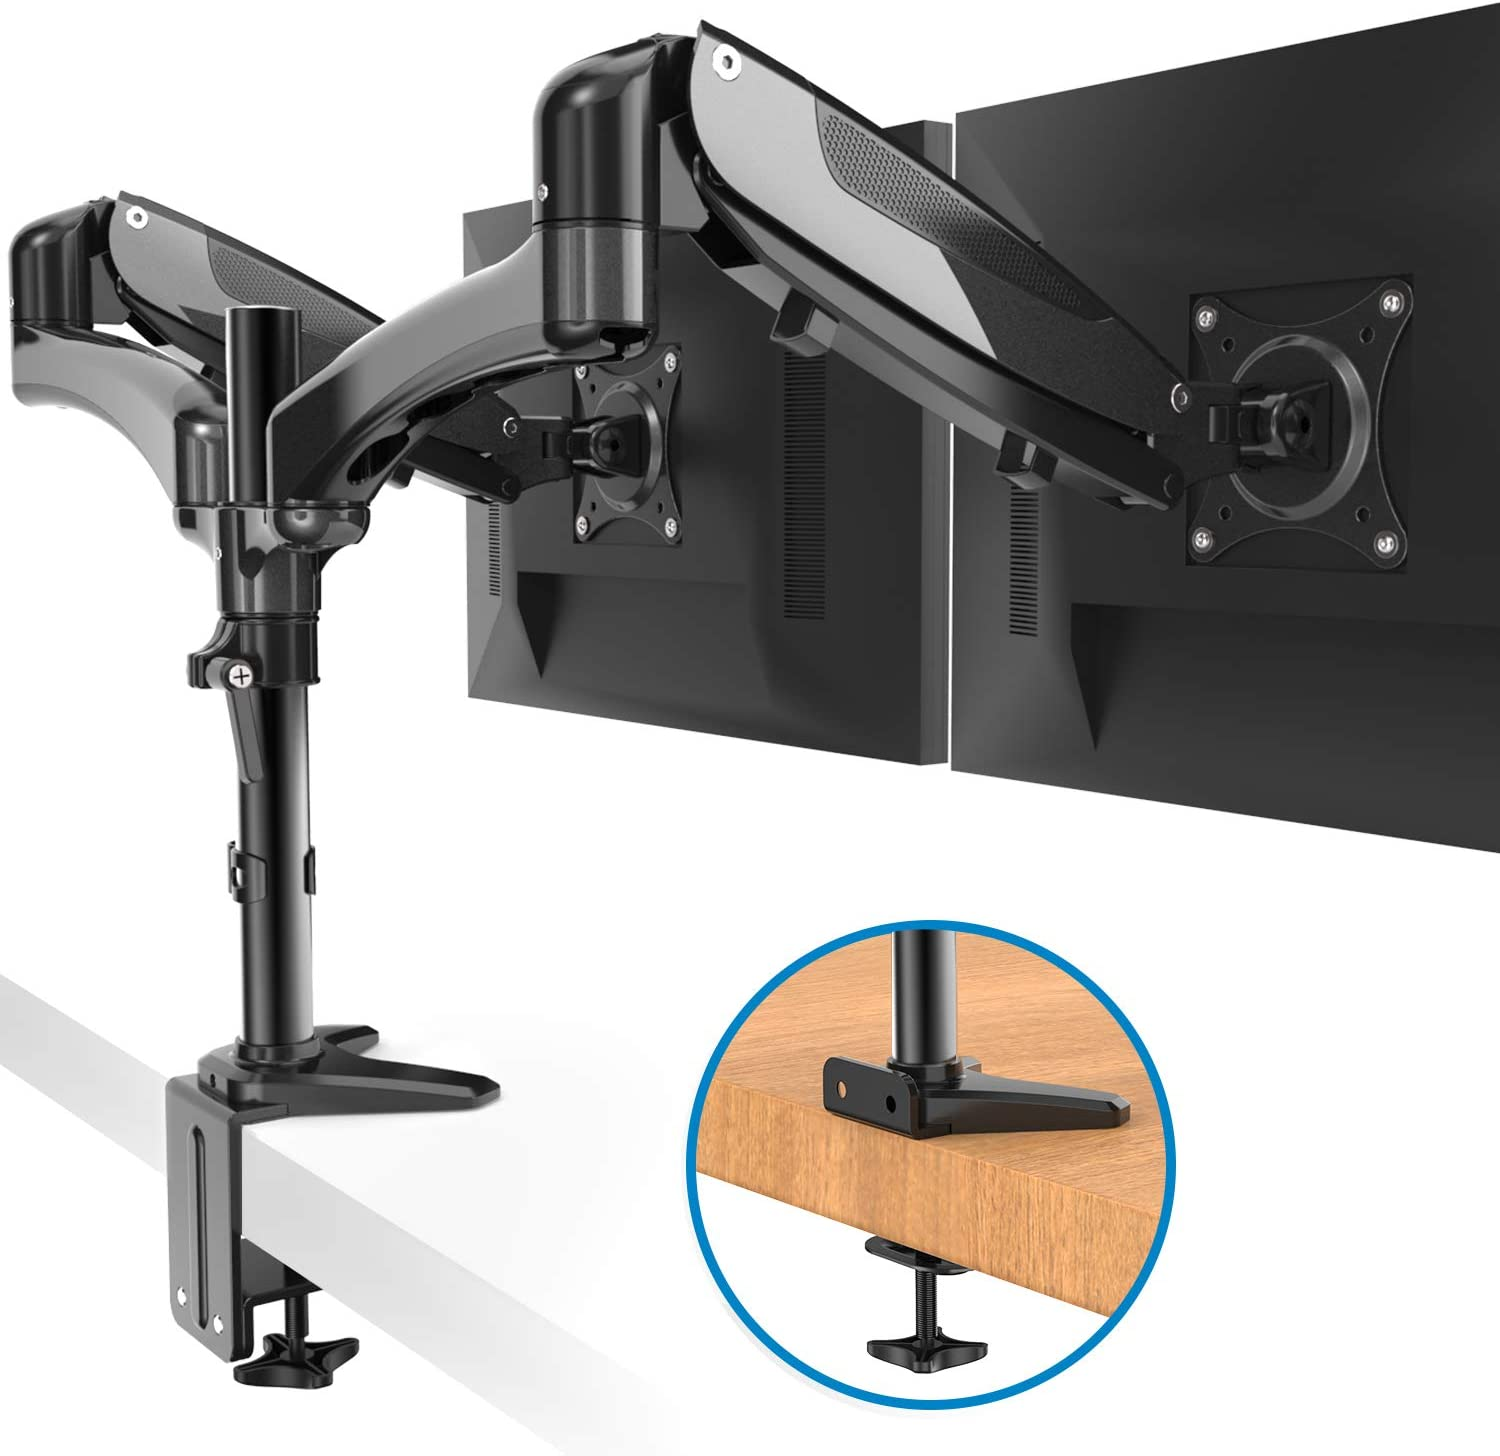 HUANUO Dual Monitor Stand - Height Adjustable Gas Spring Monitor Desk Mount Fits 2 Flat/Curved Computer Screens 15 to 27 Inch, Double Articulating Arms VESA Bracket with C Clamp, Grommet Mounting